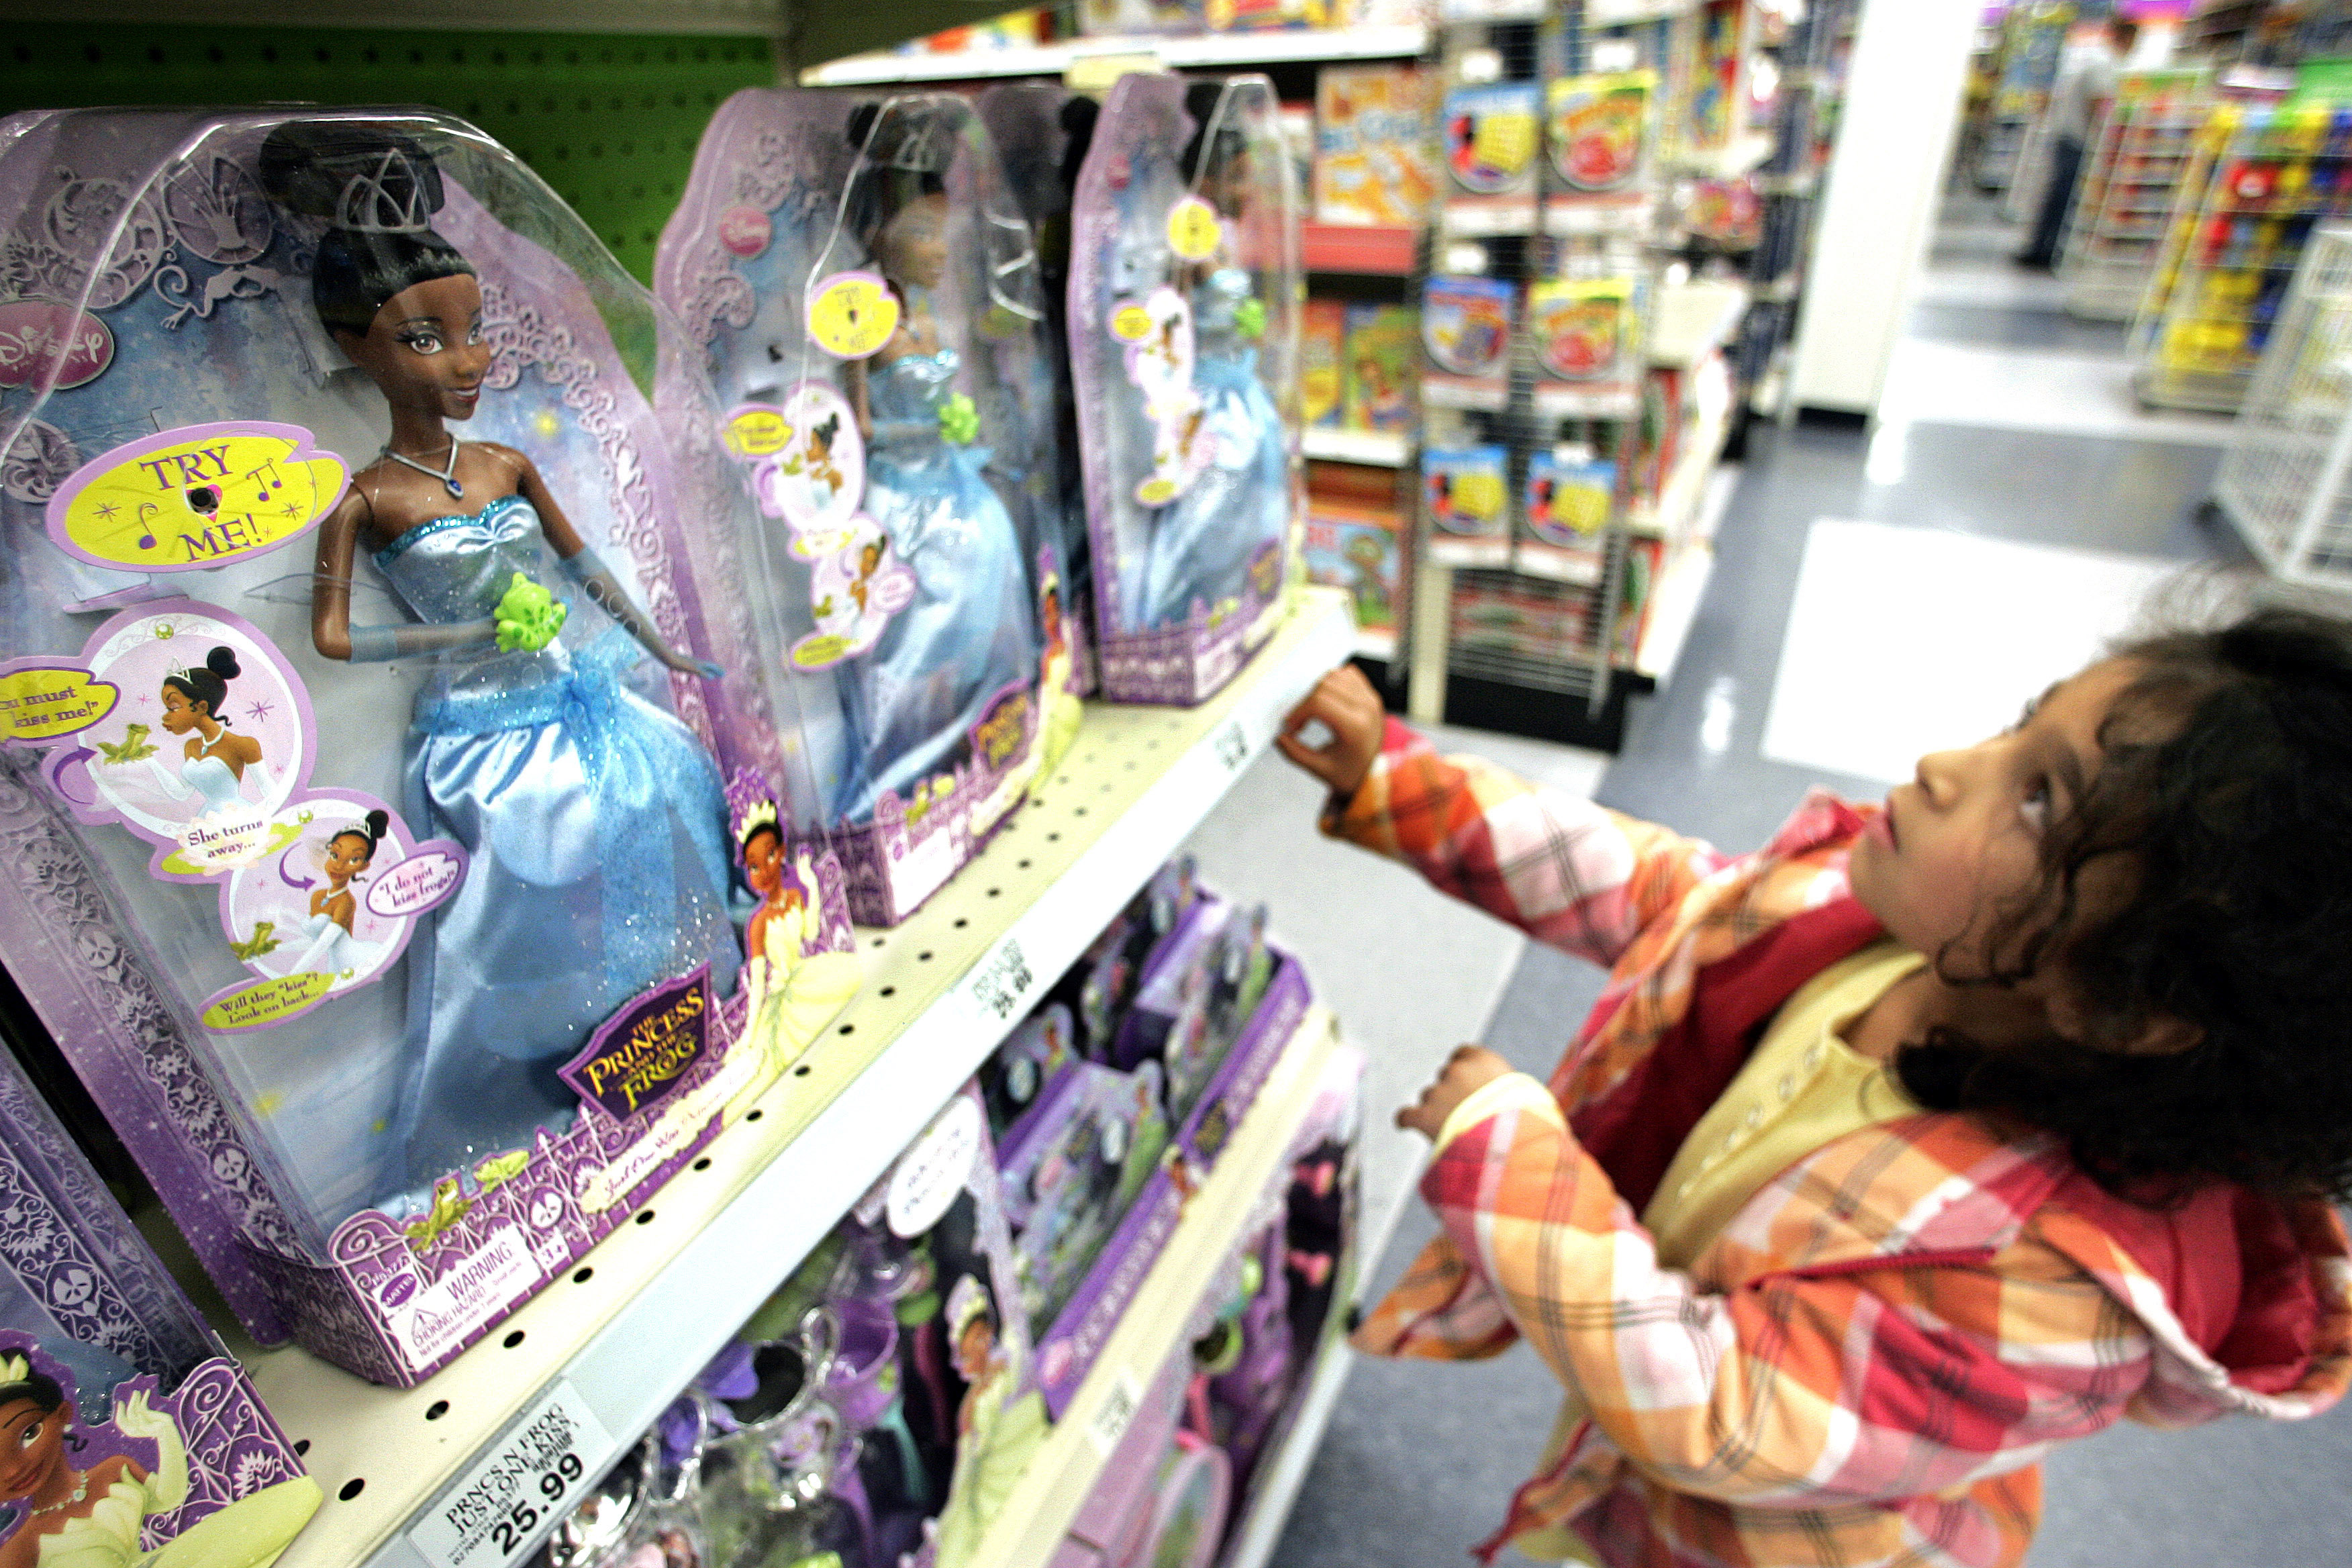 A young girl looks at a doll based on the Disney animated film, The Princess and the Frog.